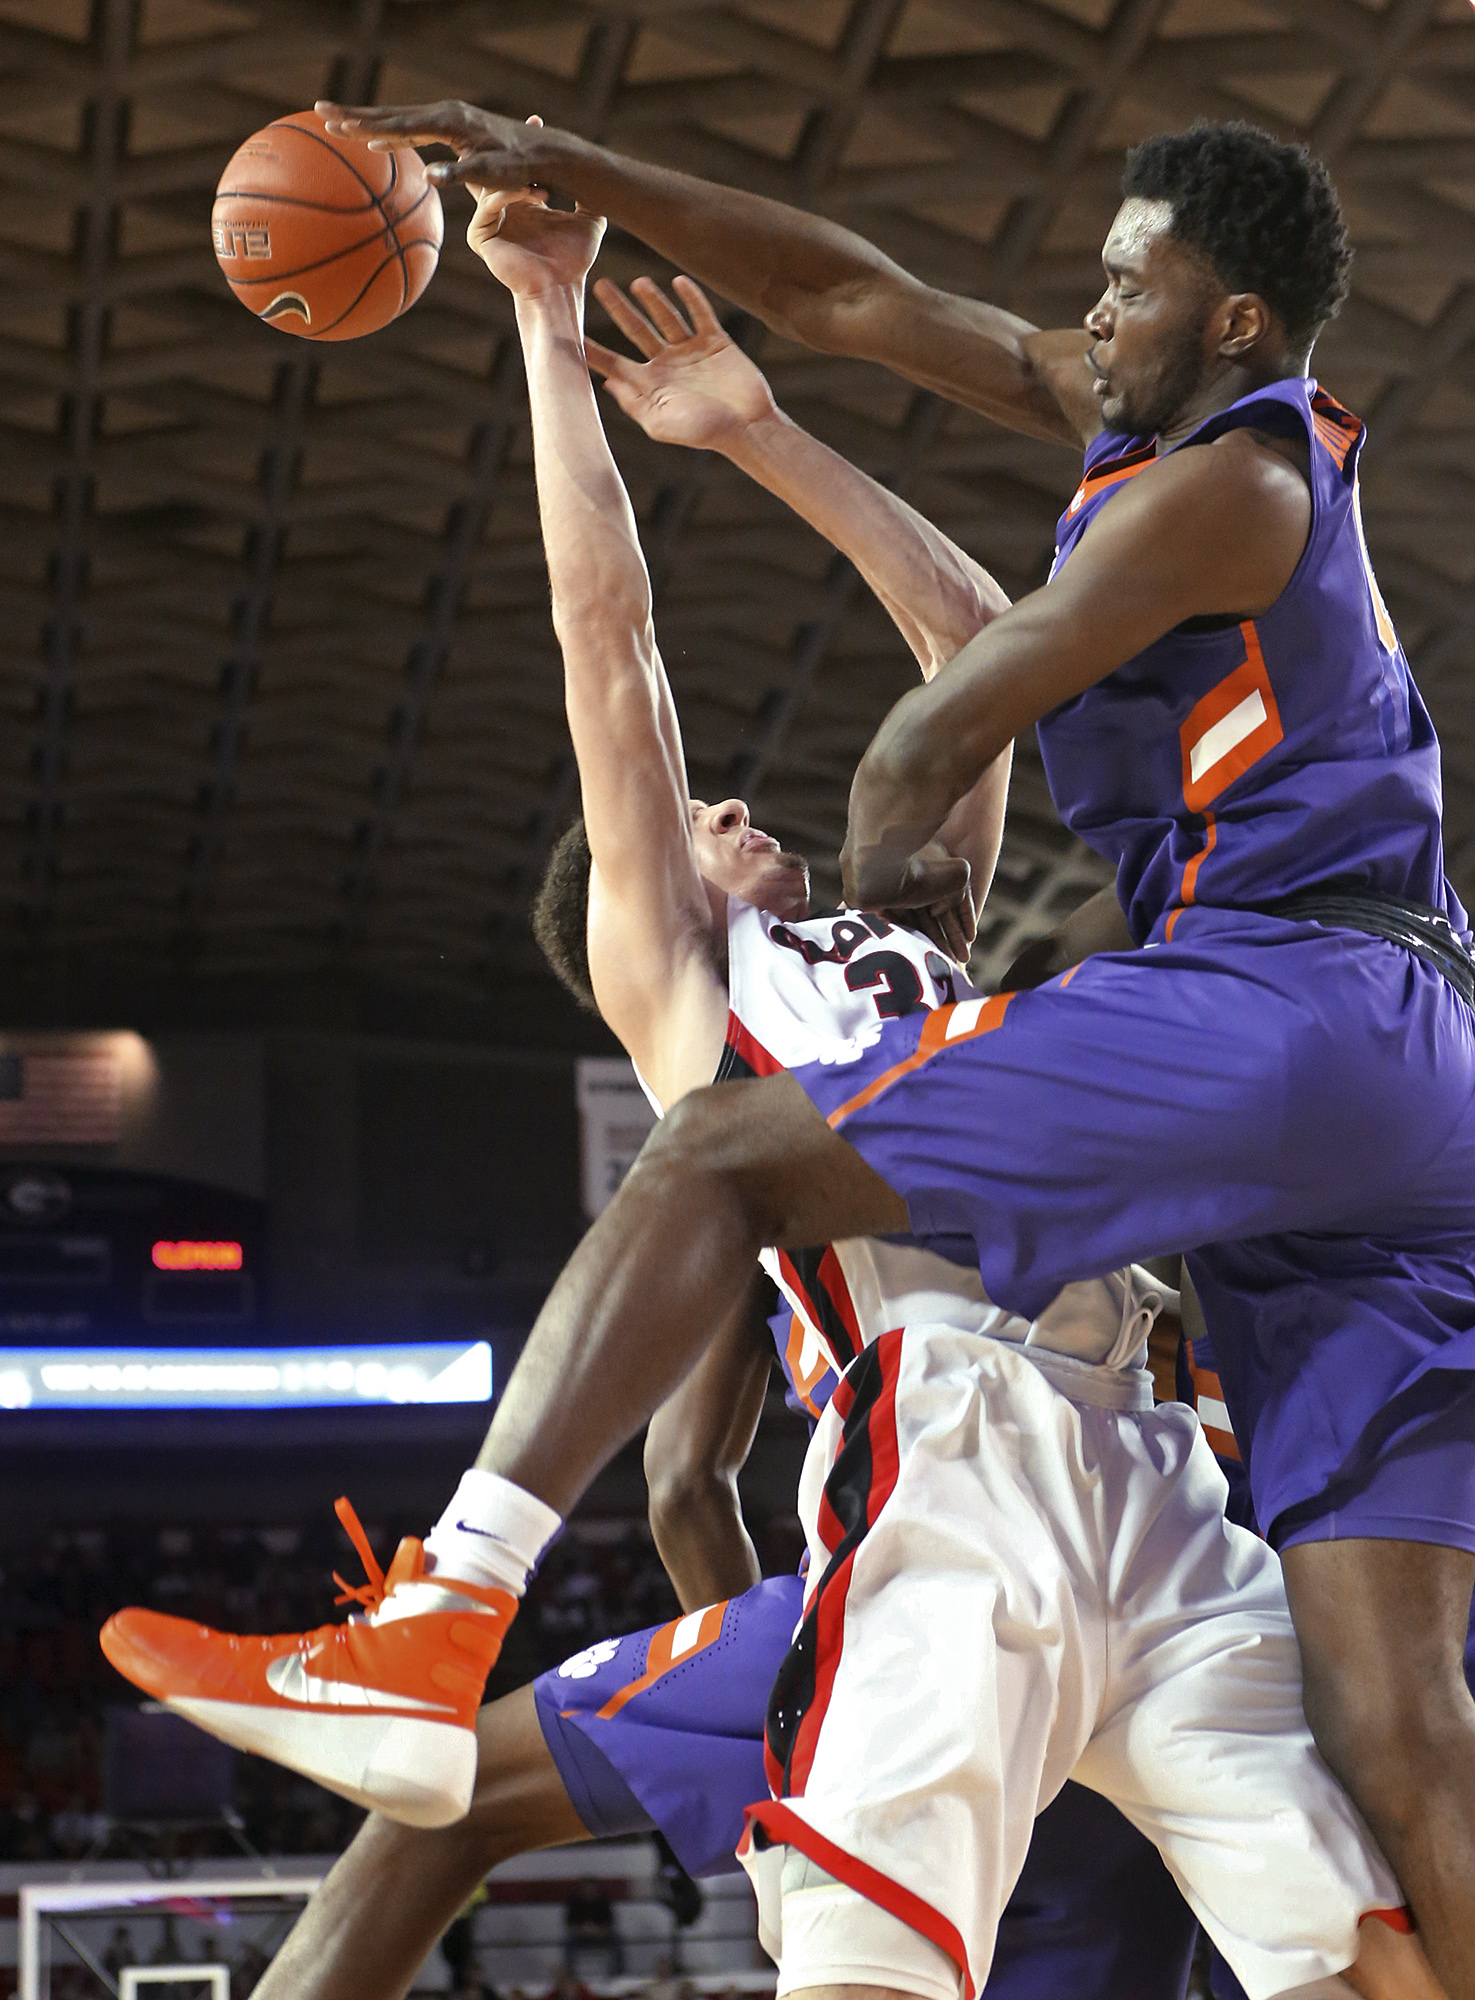 Clemson center Legend Robertin blocks a shot by Georgia forward Mike Edwards during an NCAA college basketball game Tuesday, Dec. 22, 2015, in Athens, Ga. Georgia defeated Clemson 71-48. (Curtis Compton/Atlanta Journal Constitution via AP)